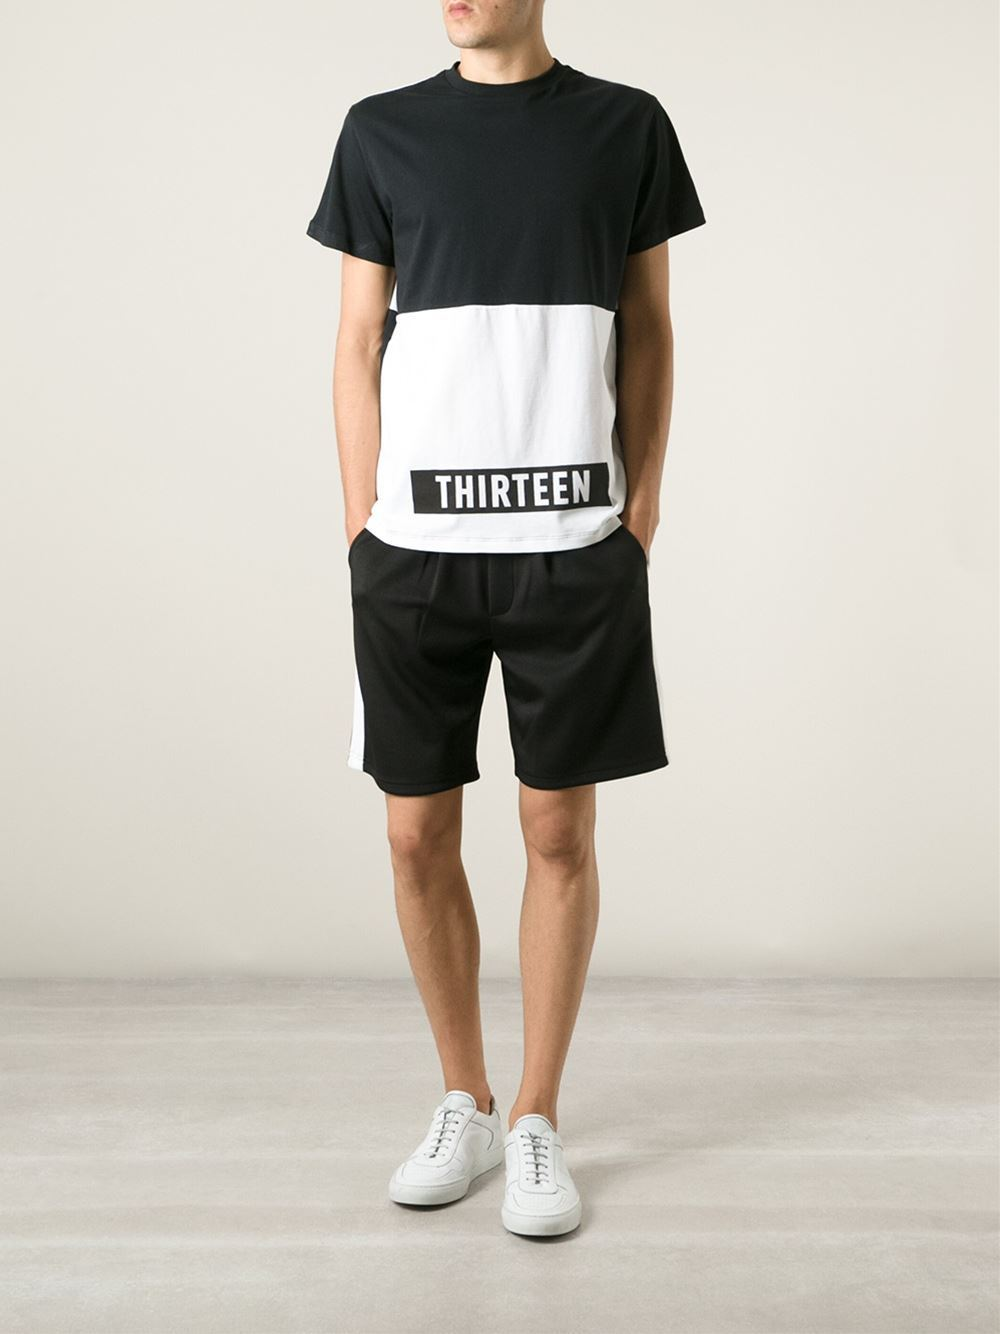 T shirt design yourself - Two Tone T Shirt Design Your Own T Shirt Wholesale T Shirt Printing